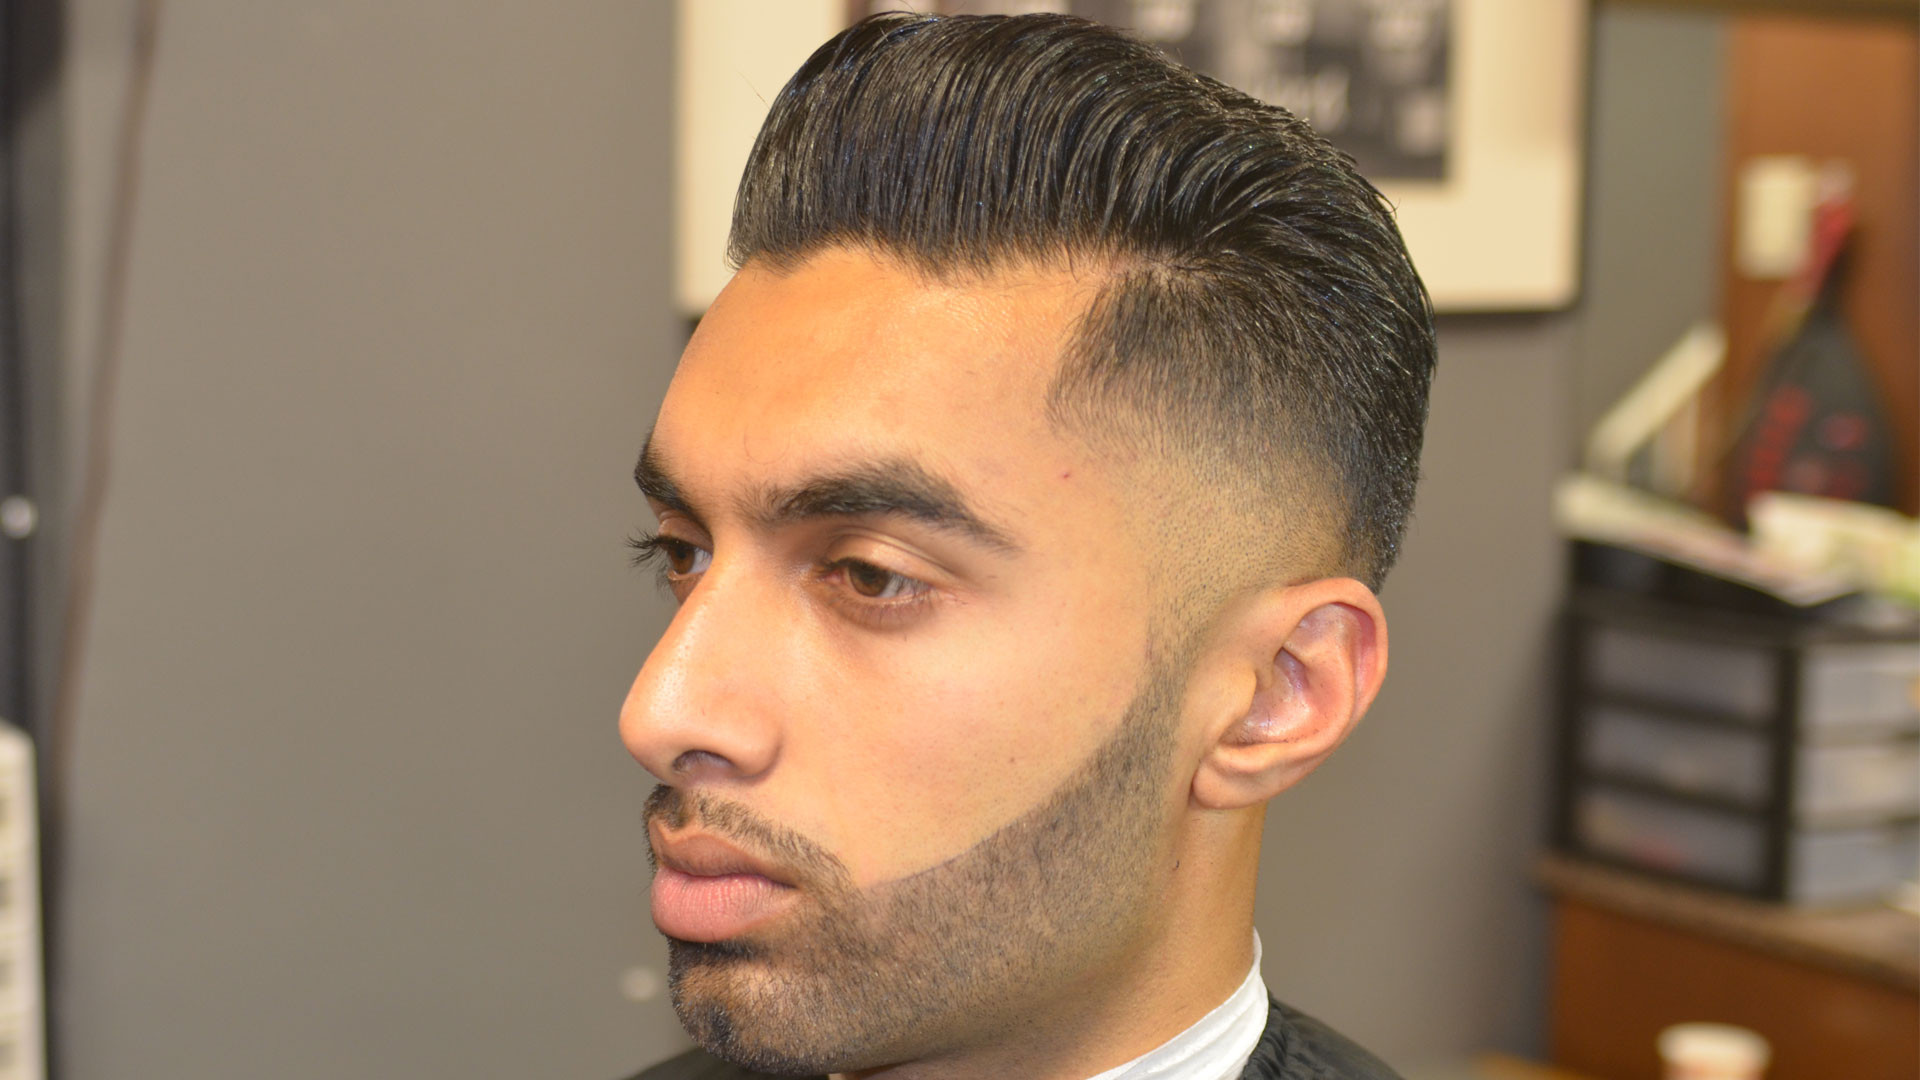 TAPER WITH LINEUP-NO BEARD